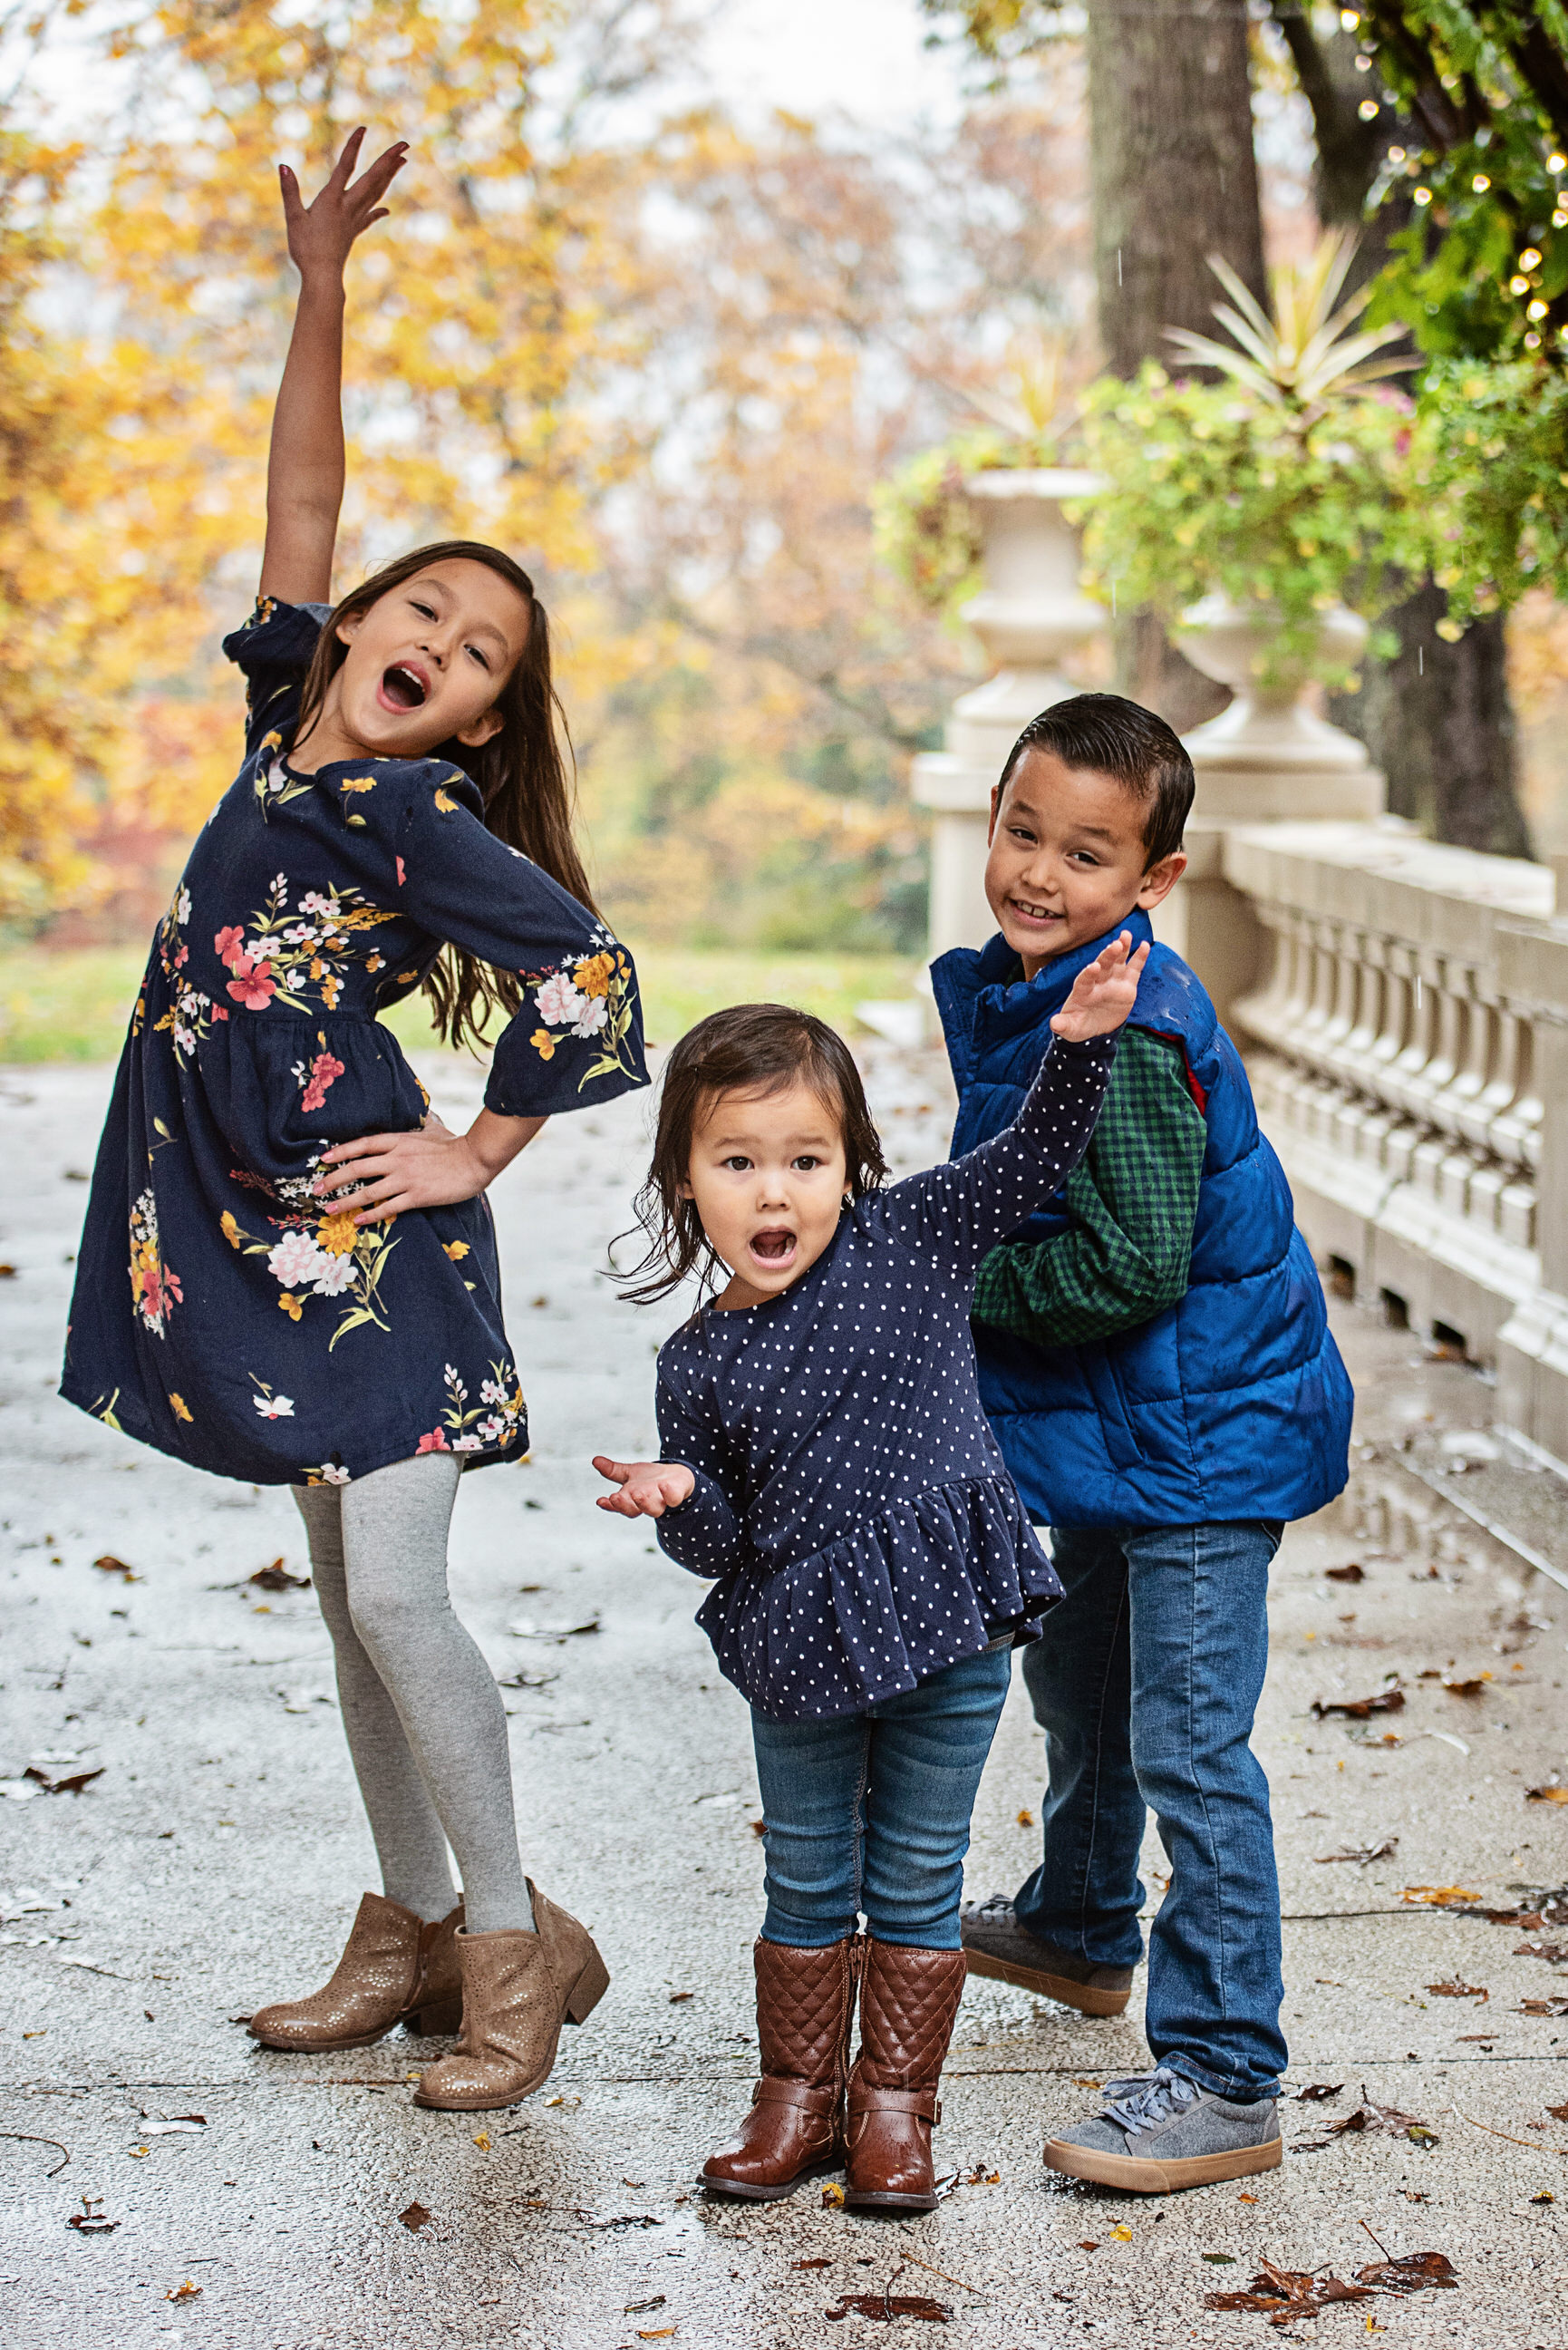 MarylandFamilyPhotography-LienFamily2018-6.jpg